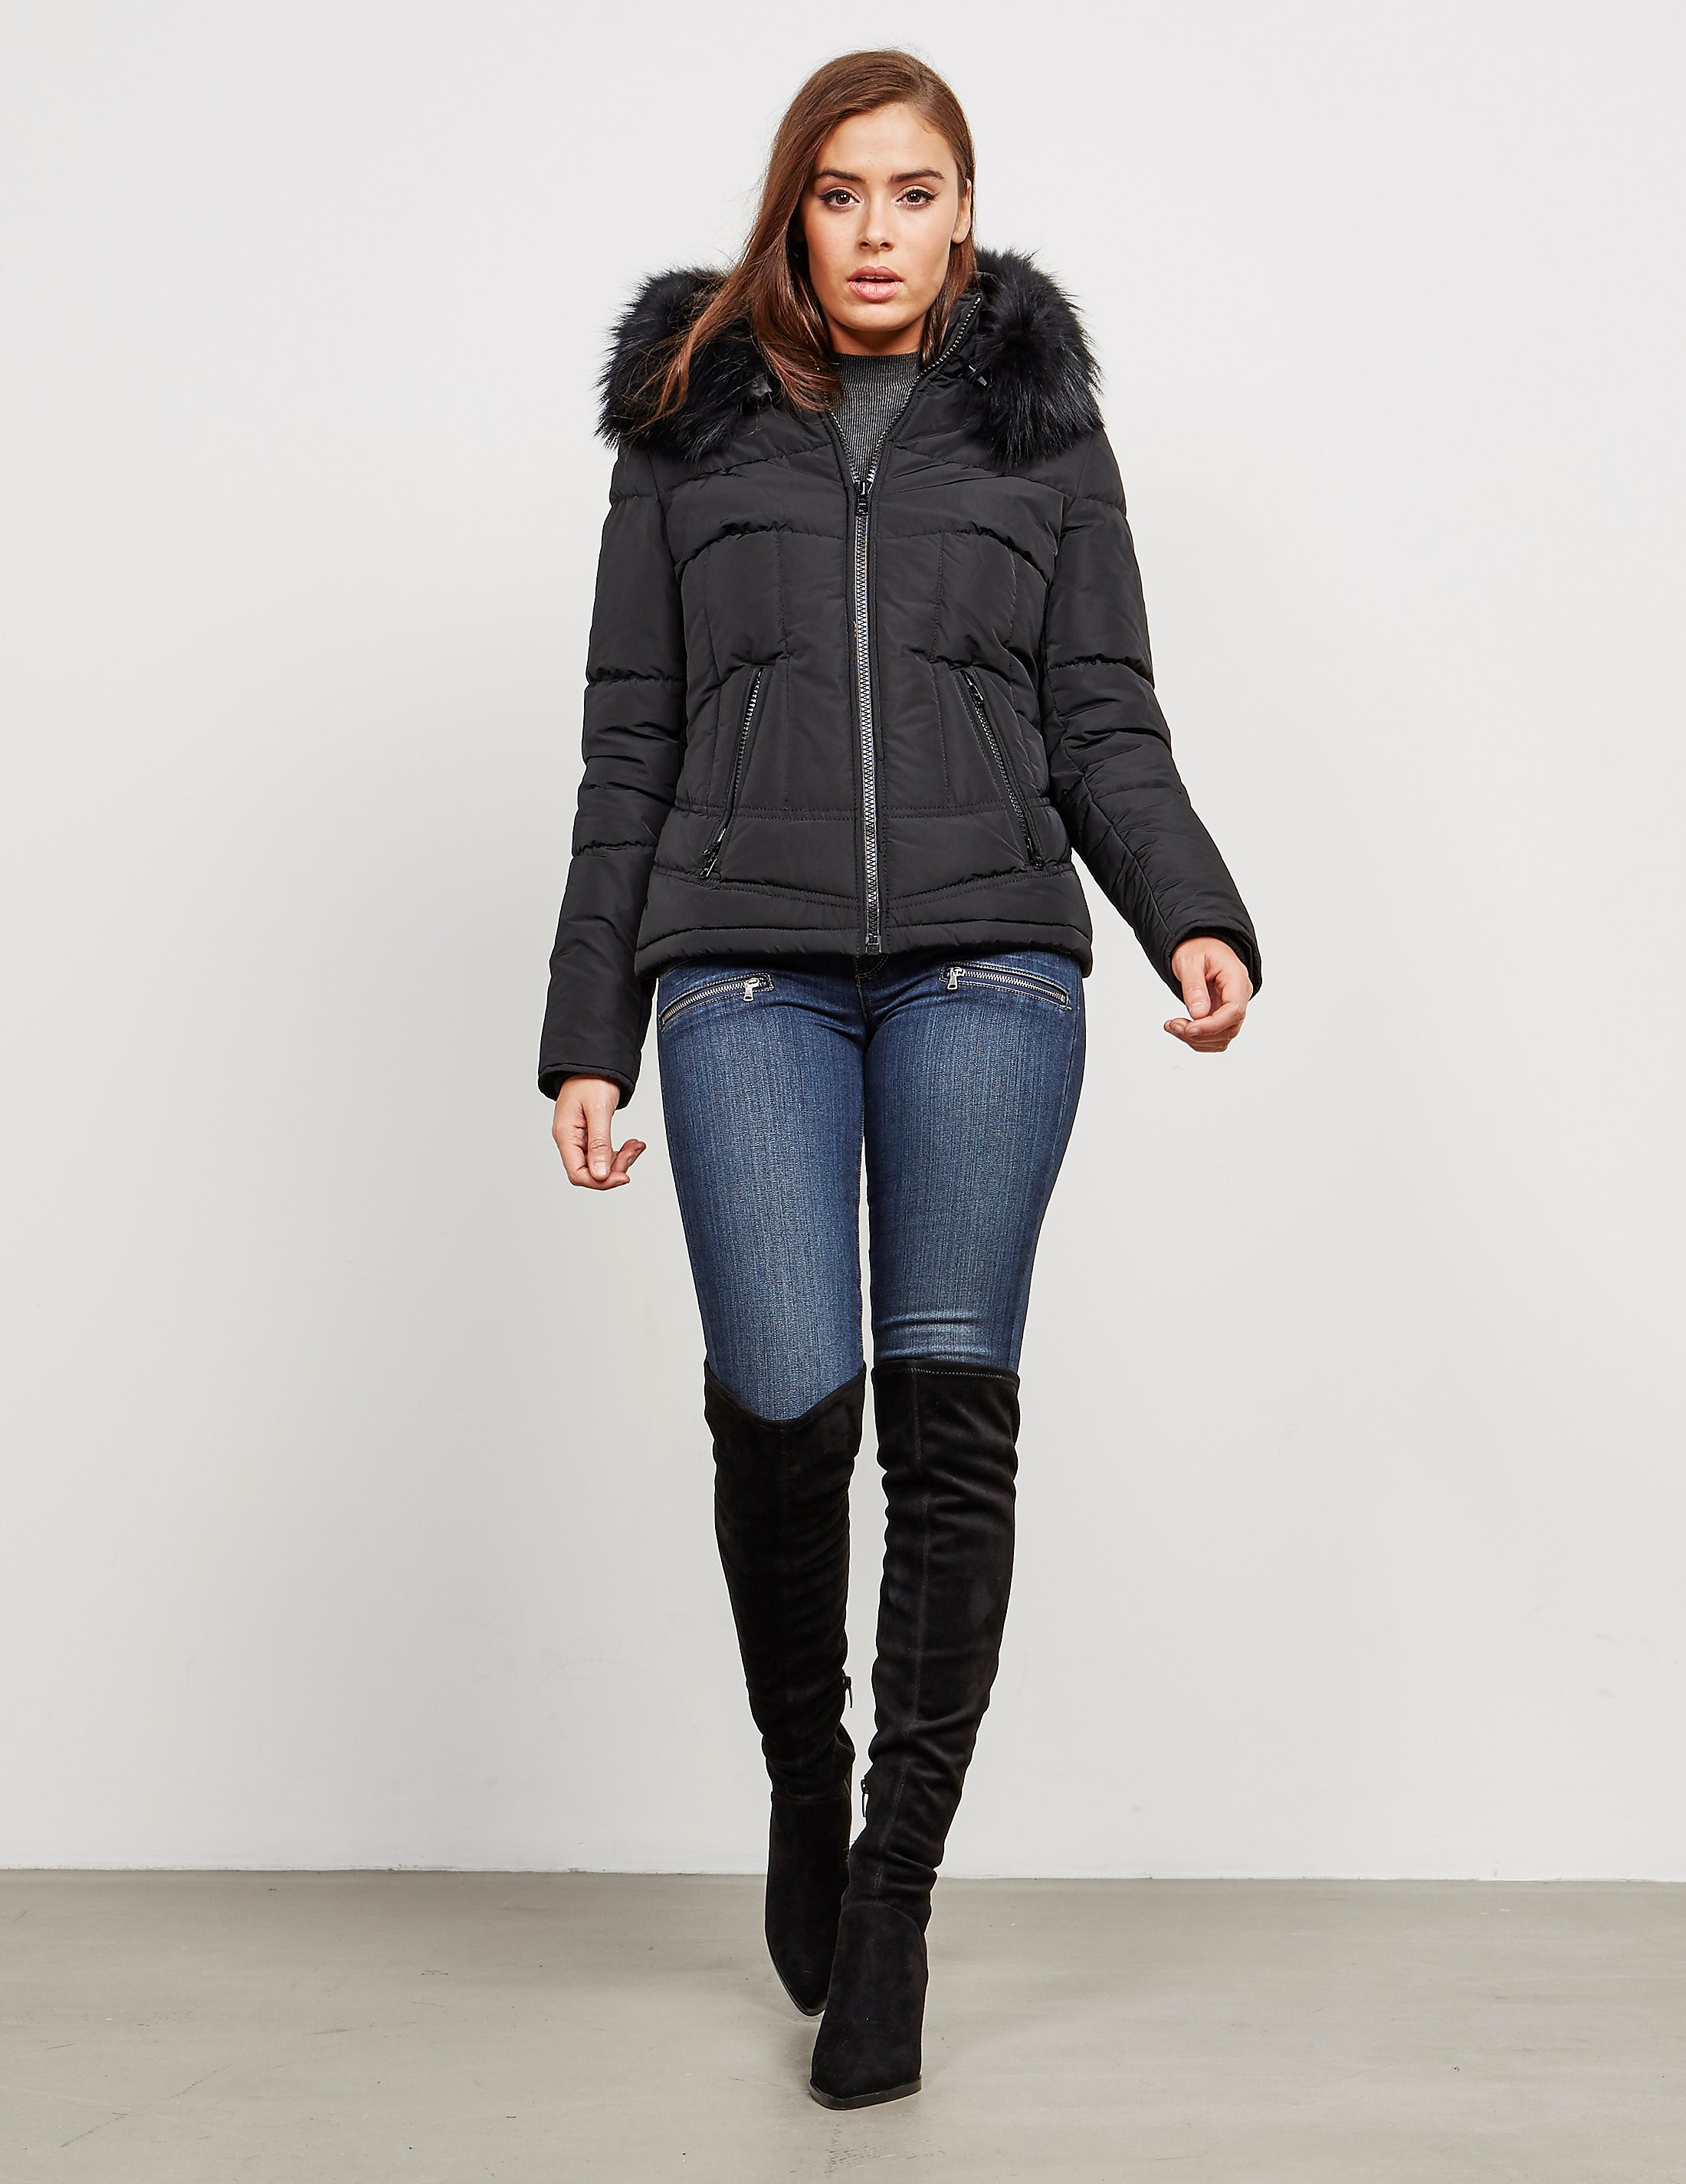 Froccella Puffer Jacket